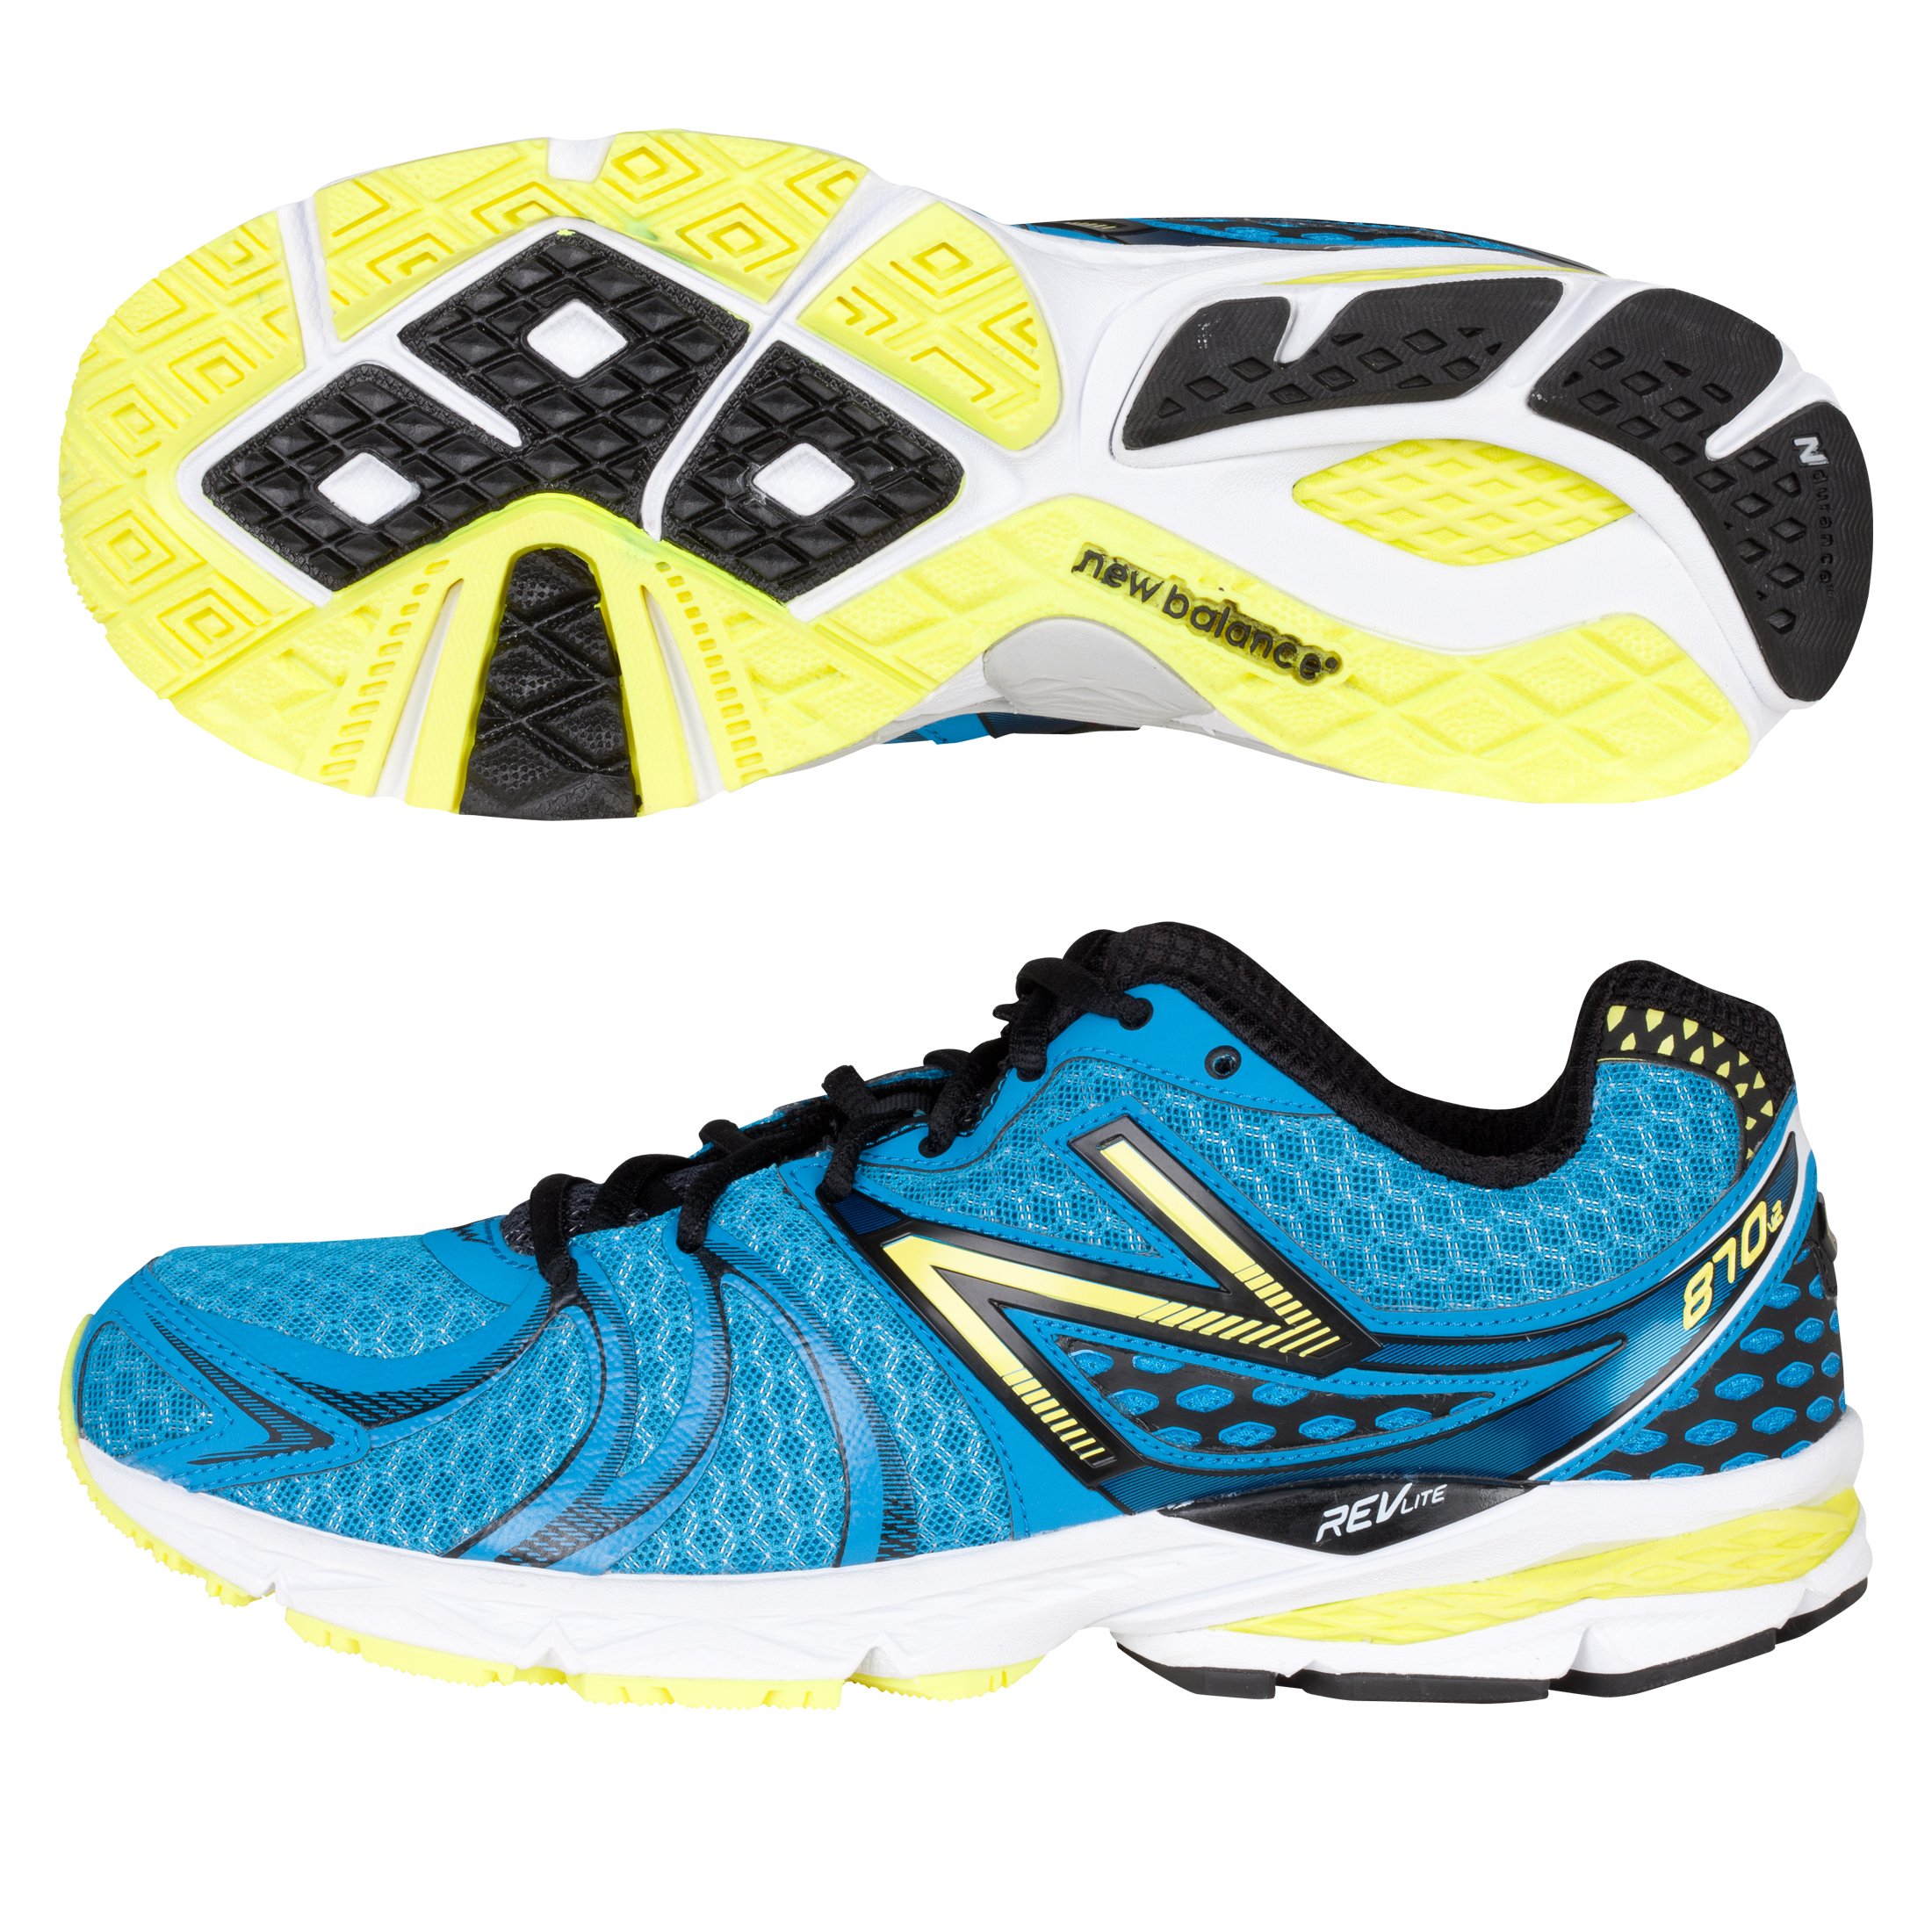 New Balance 870V2 Running Trainers - Blue/Yellow